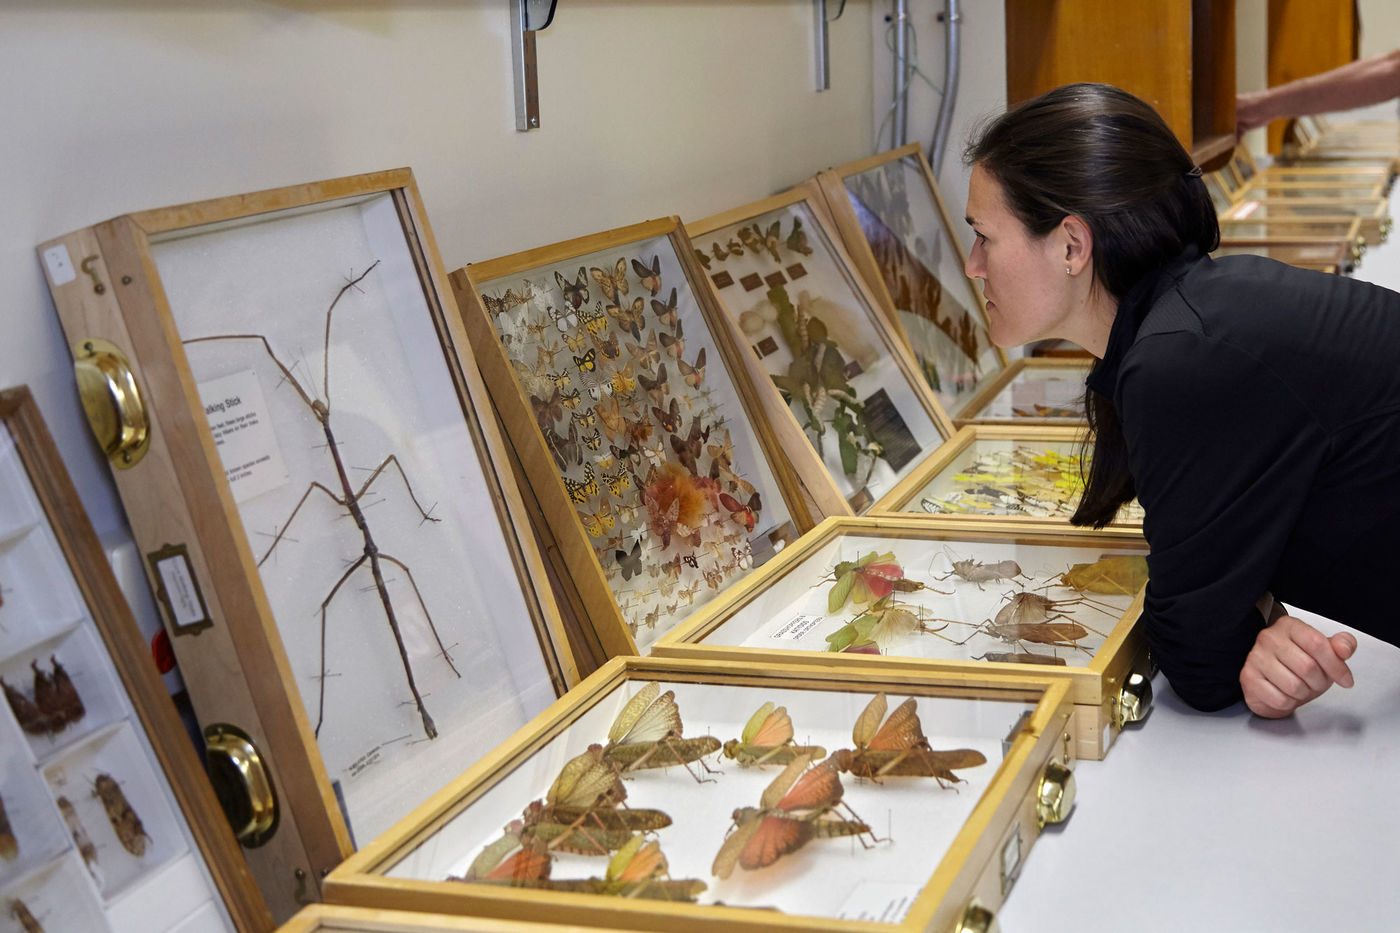 A woman leans down to look at drawers of insect specimens lined up on display.